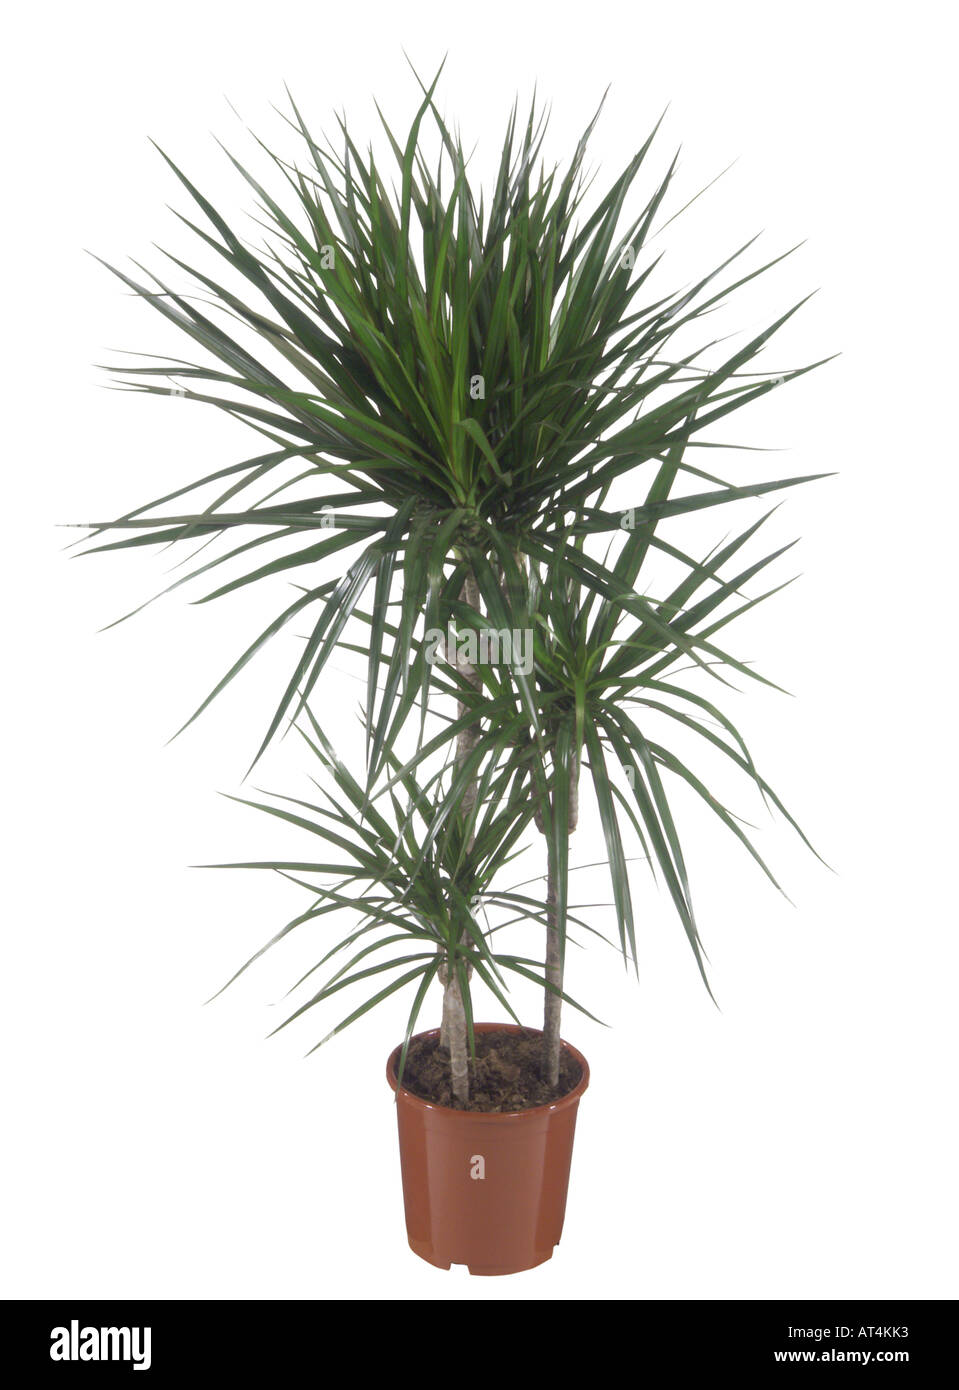 Dragon tree dracaena marginata potted plant stock photo for Dracaena marginata